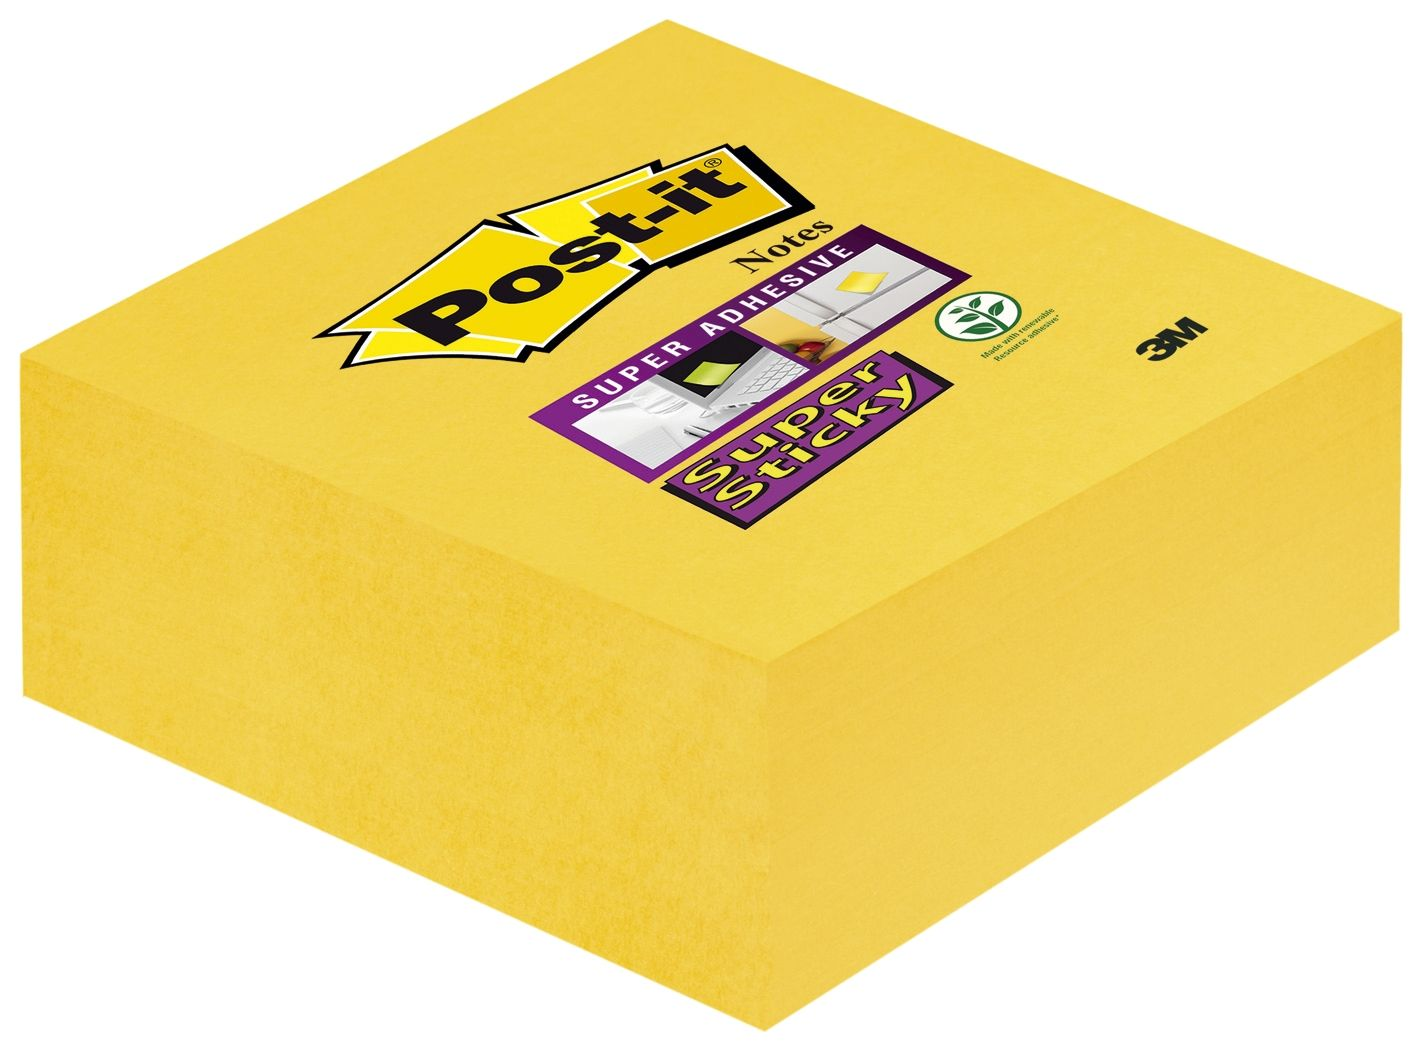 Haftnotizen Post-it Notes Super Sticky - 76 x 76 mm gelb 12 Blöcke +12 Gratis